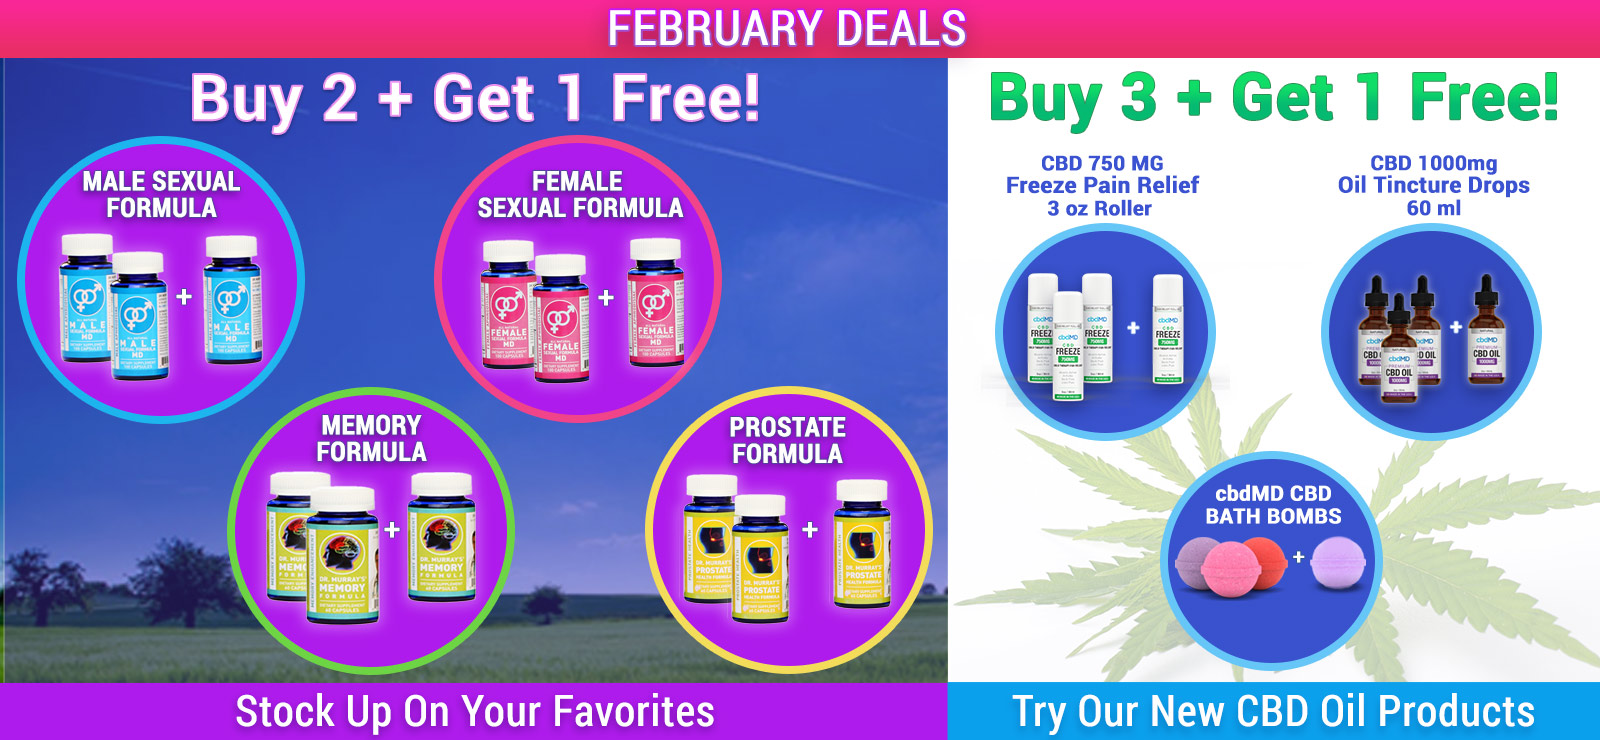 Save on your favorite Dr. Murray's products with Dr. Murray's Deals! Check this page often, we're always adding new specials, promotions and discounts.